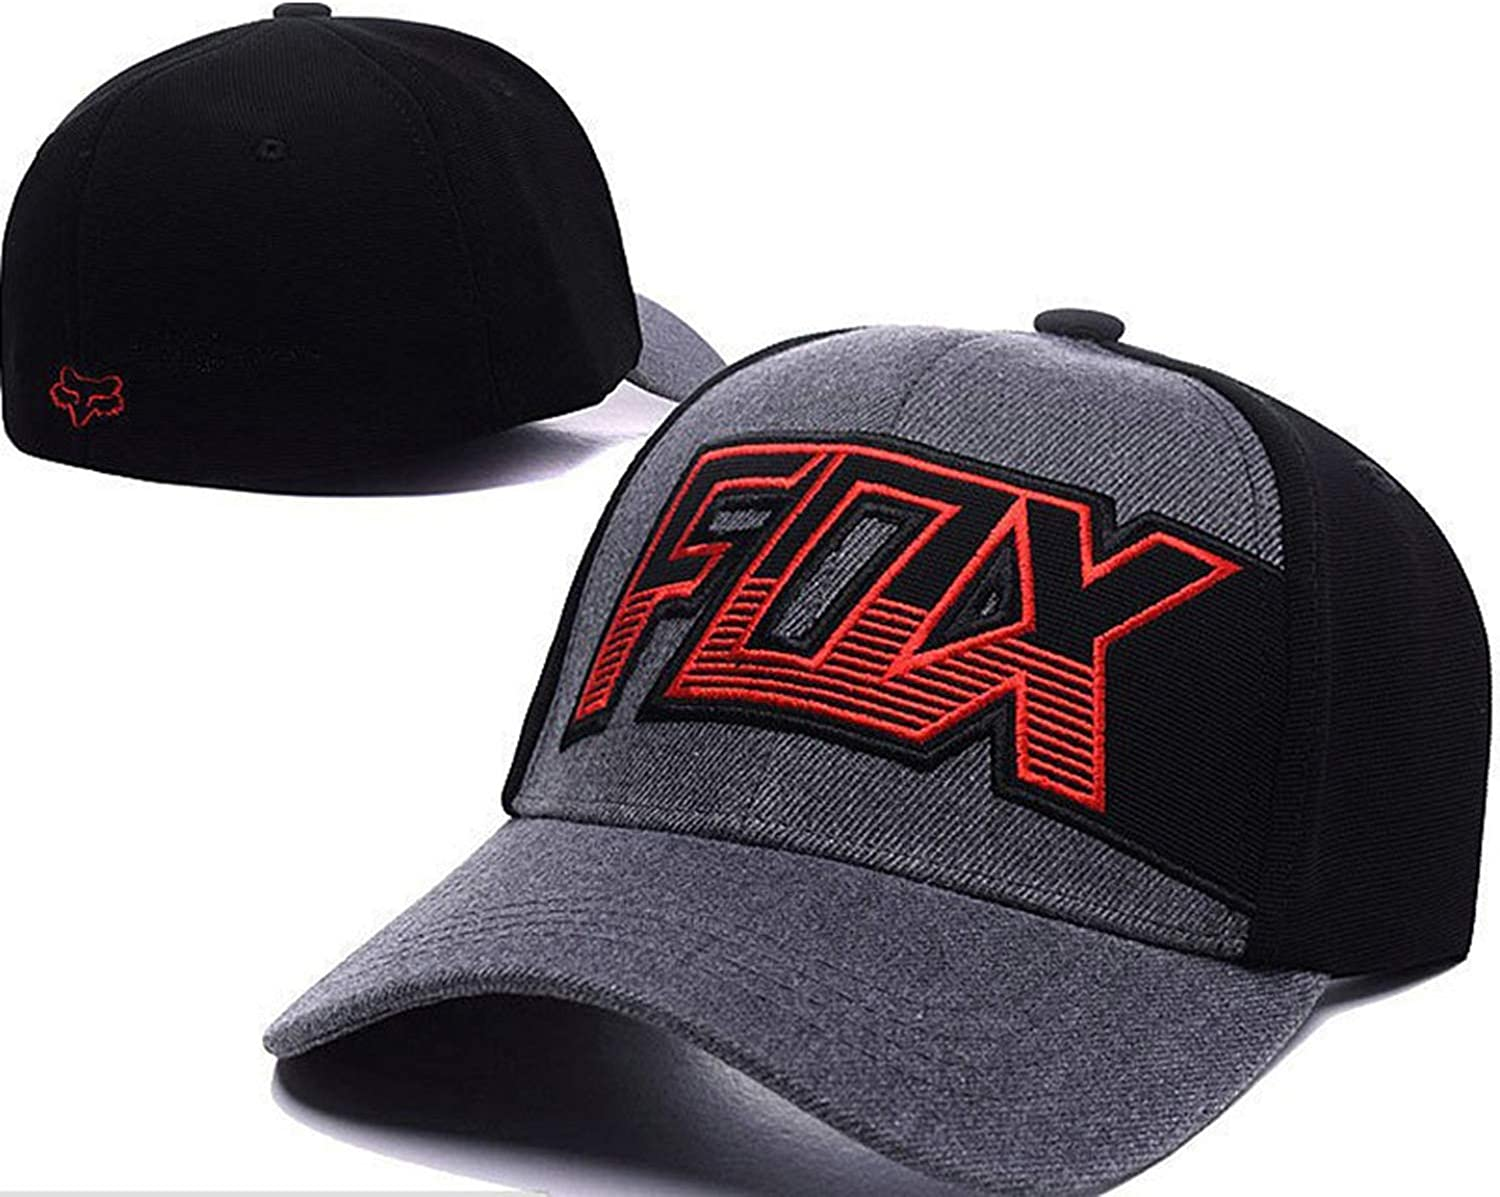 Fashion Fox Baseball Cap Women Men Motor Sports Hat Unisex Cartoon Pattern Embroidery Caps Hip Hop Hats CP0273